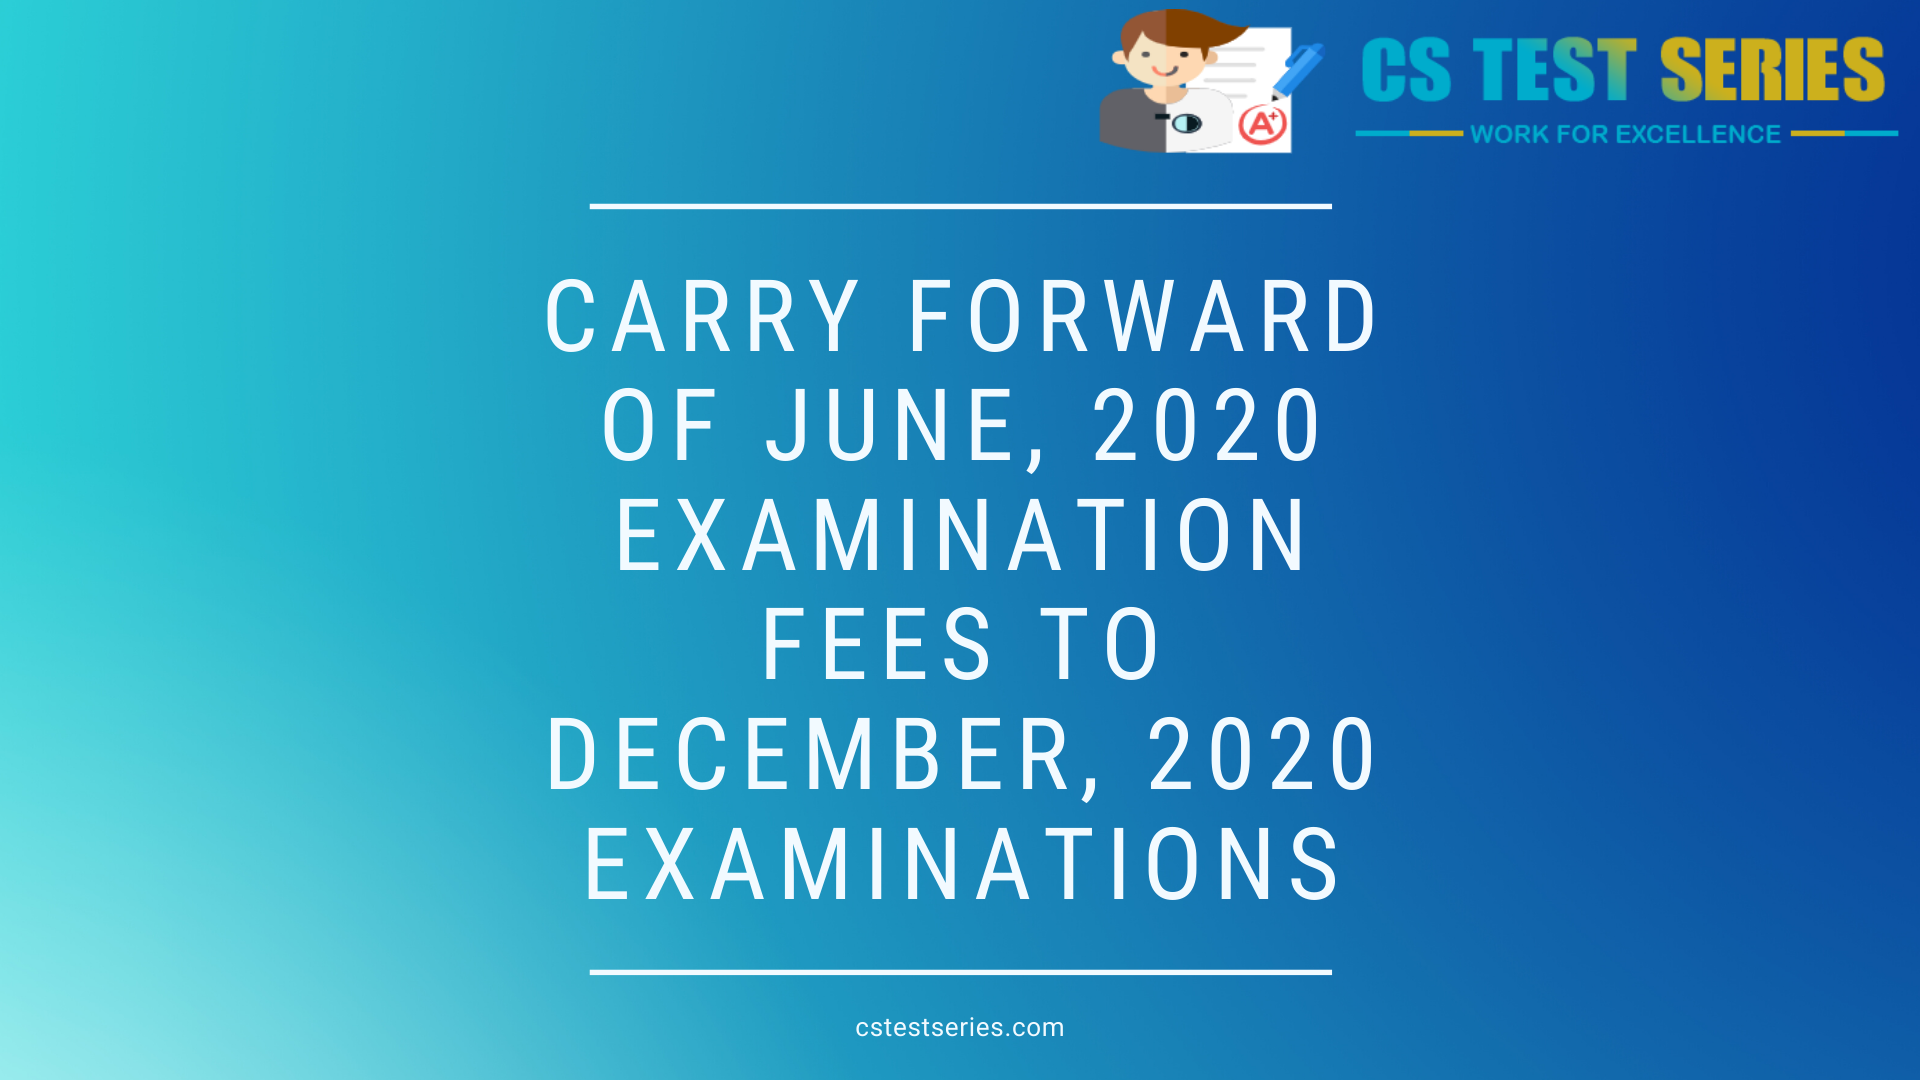 Carry Forward of June, 2020 Examination Fees to December, 2020 Examinations | CS Test Series